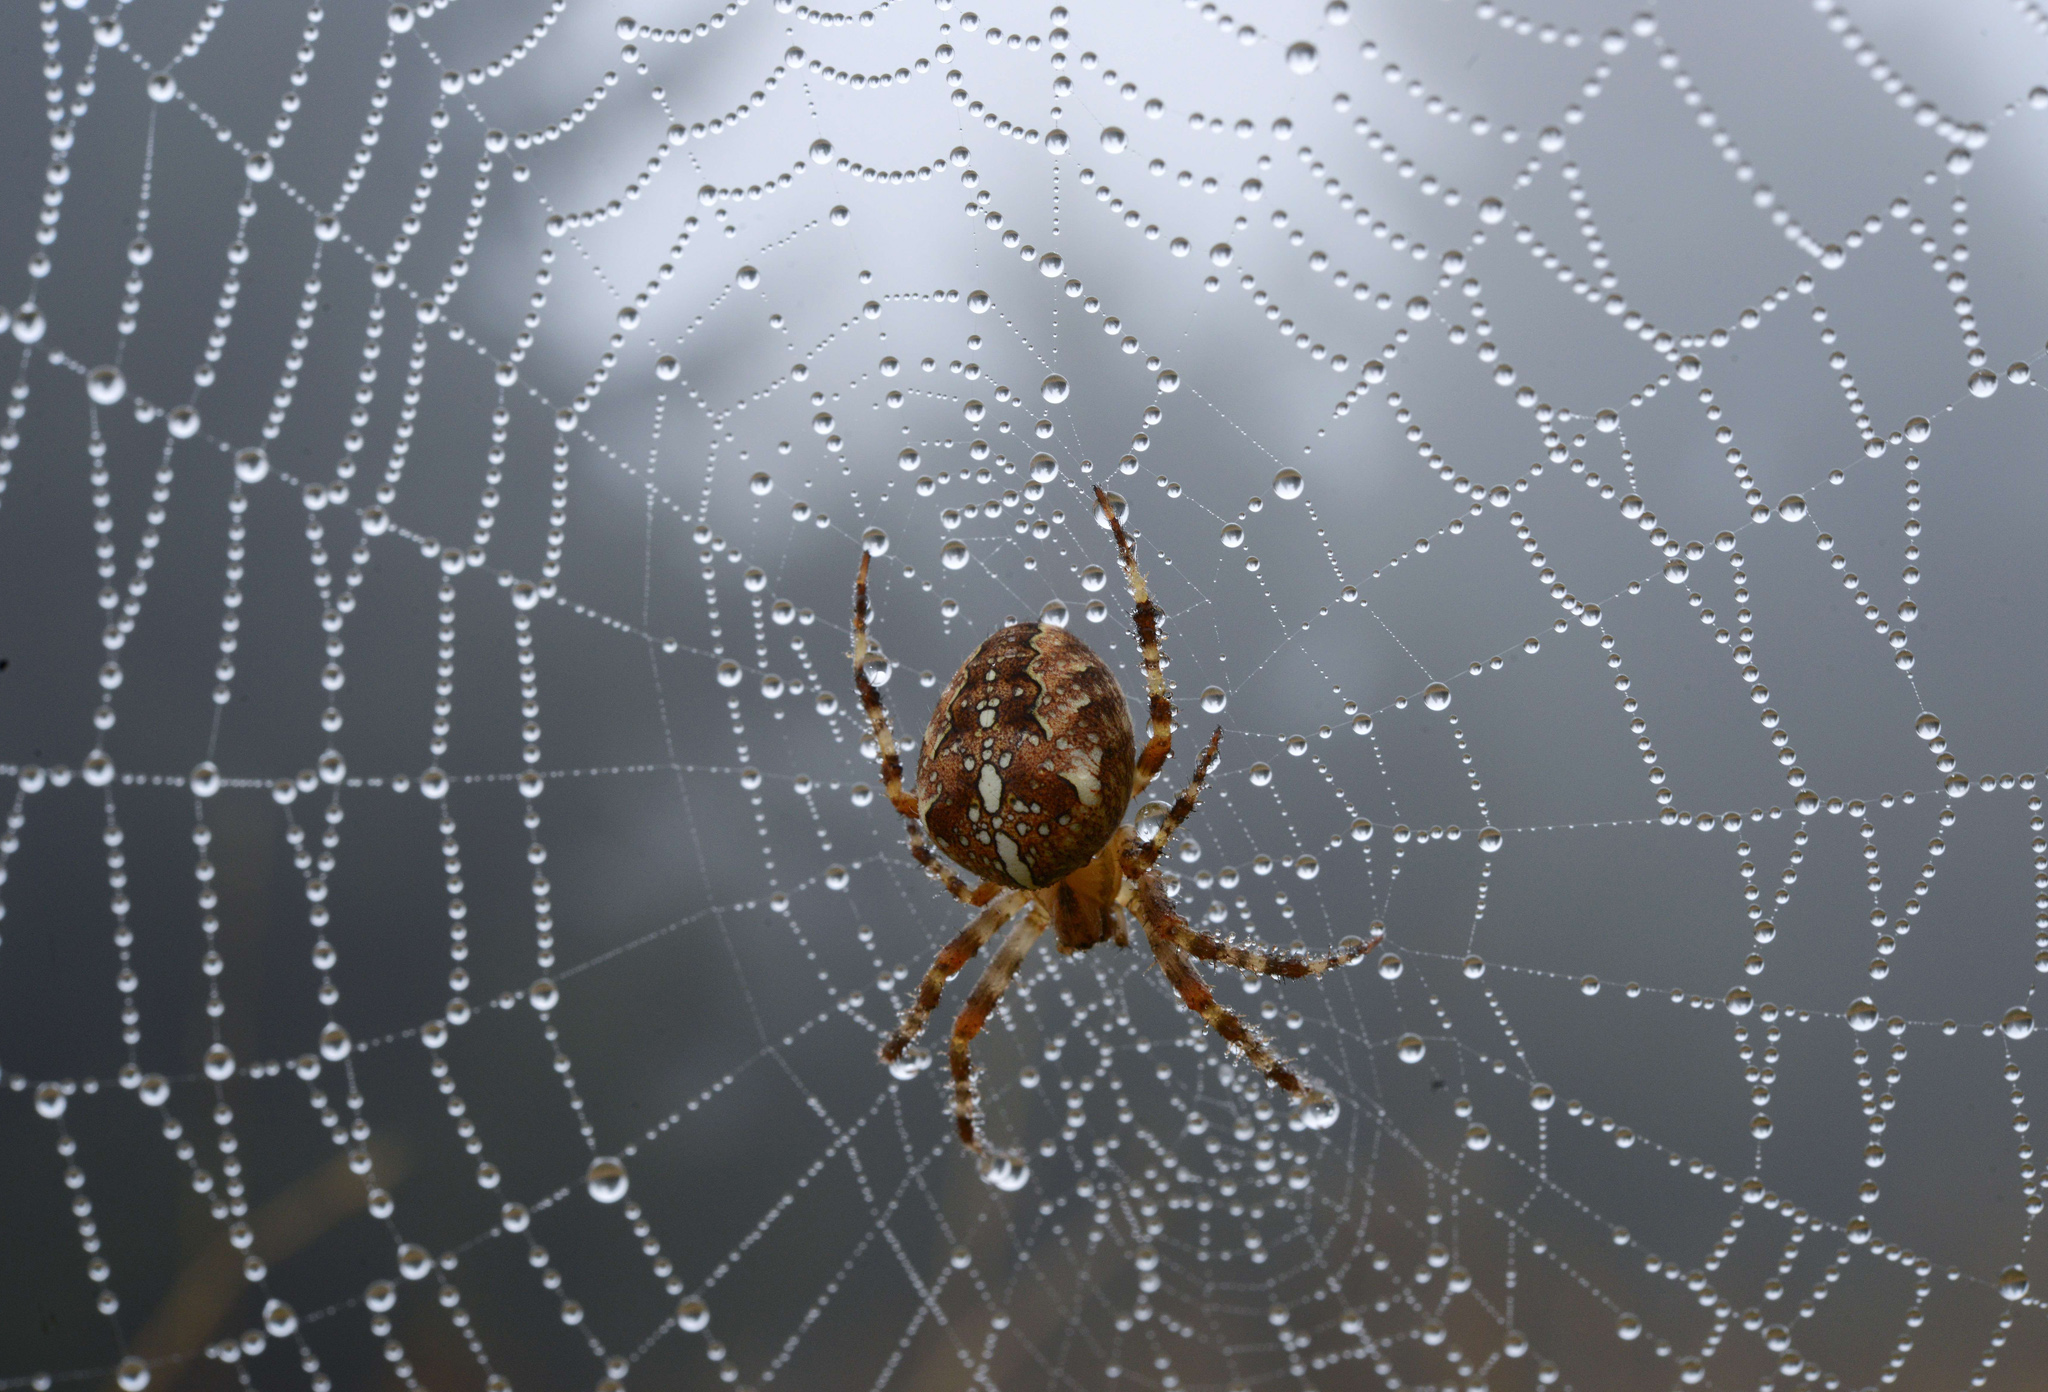 A spider is seen in its dew covered  web in Hohen Meissner, Germany.